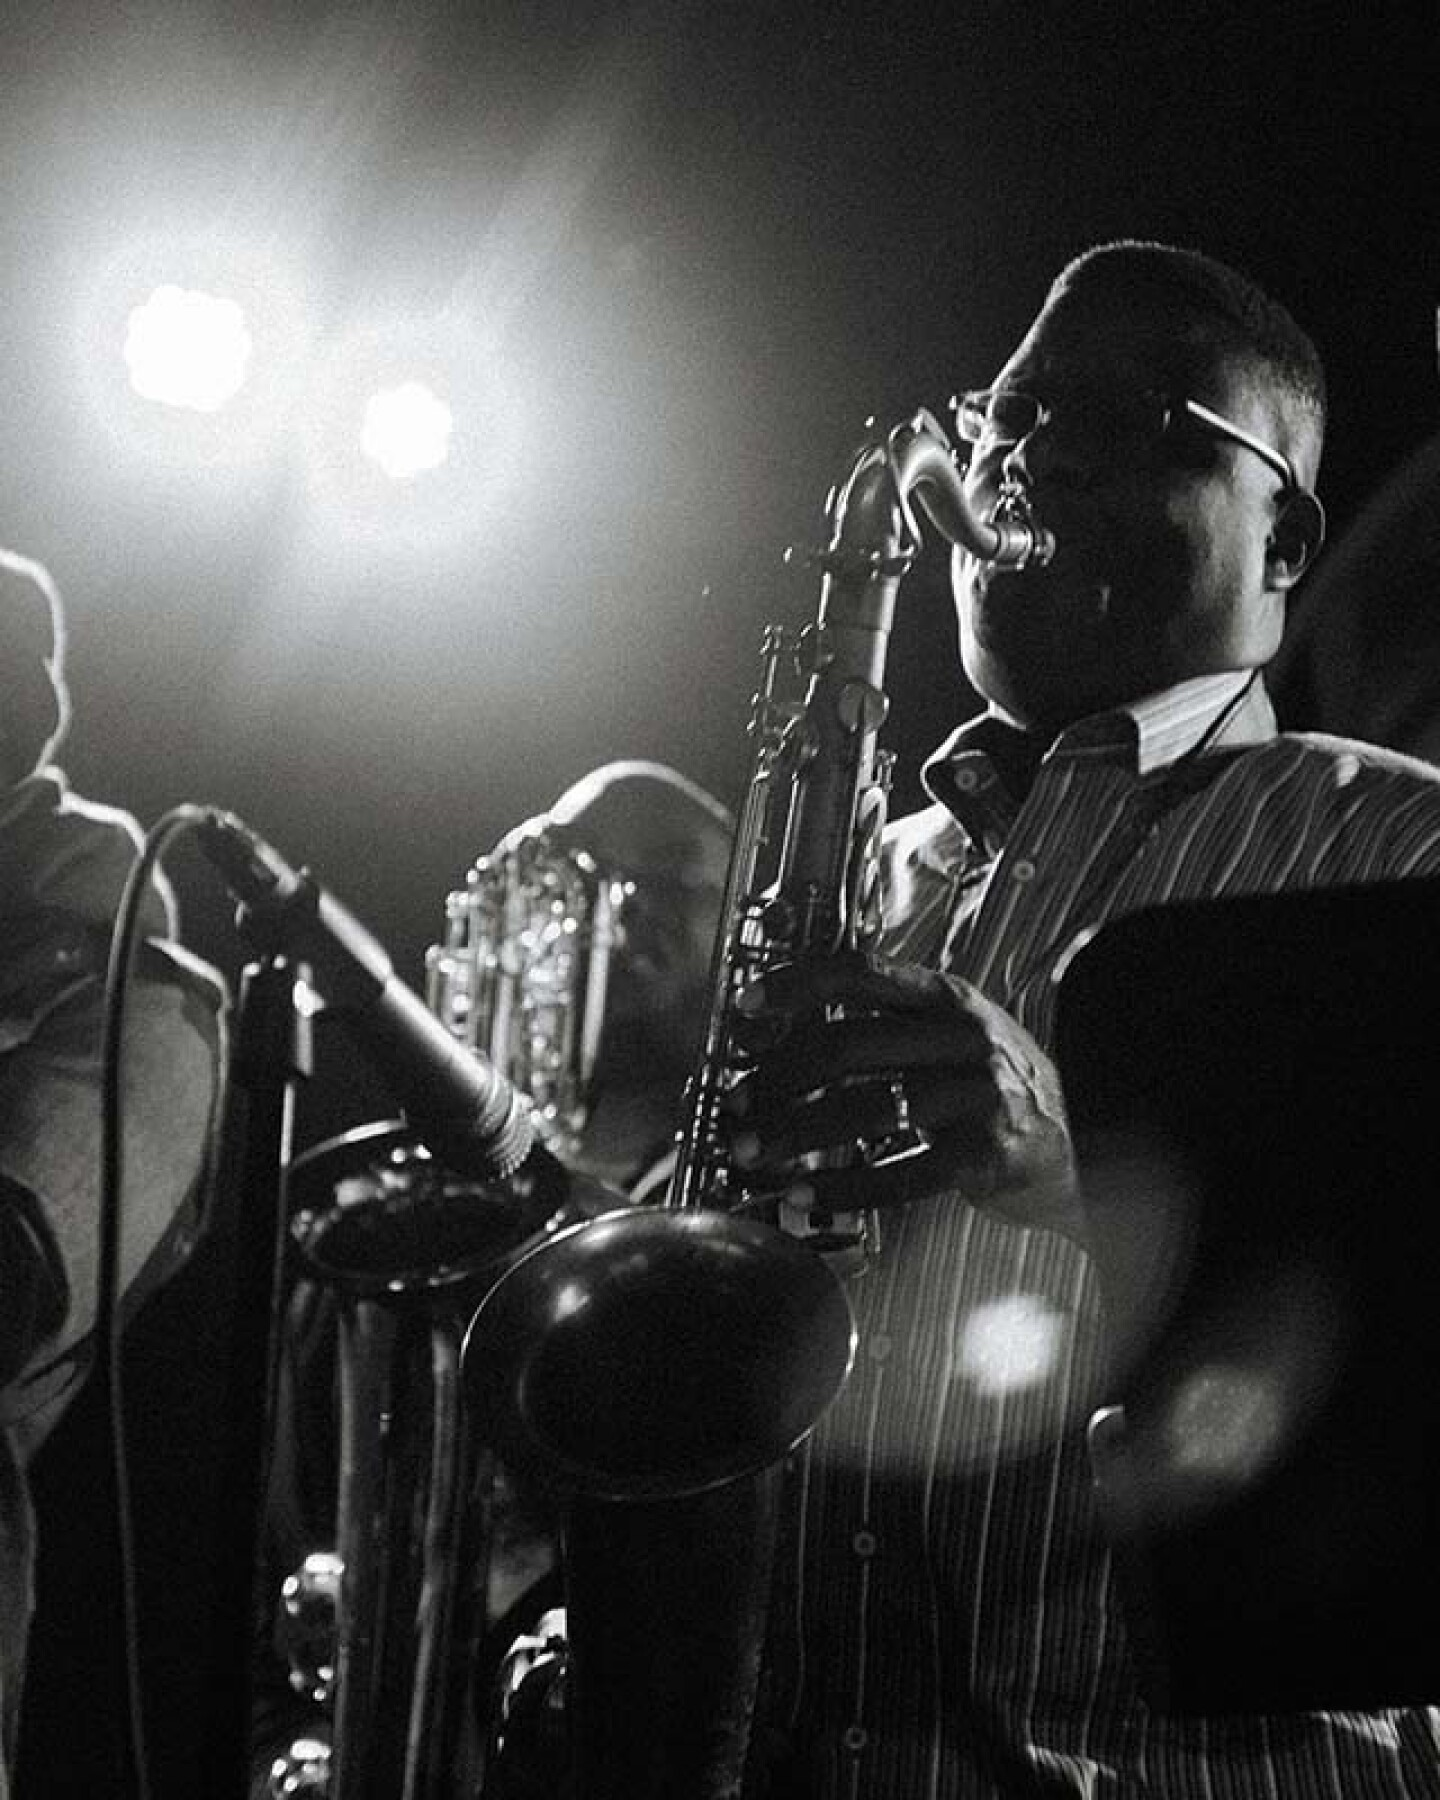 A black and white photo of Pan Afrikan Peoples Arkestra playing | Samantha Lee ab s11